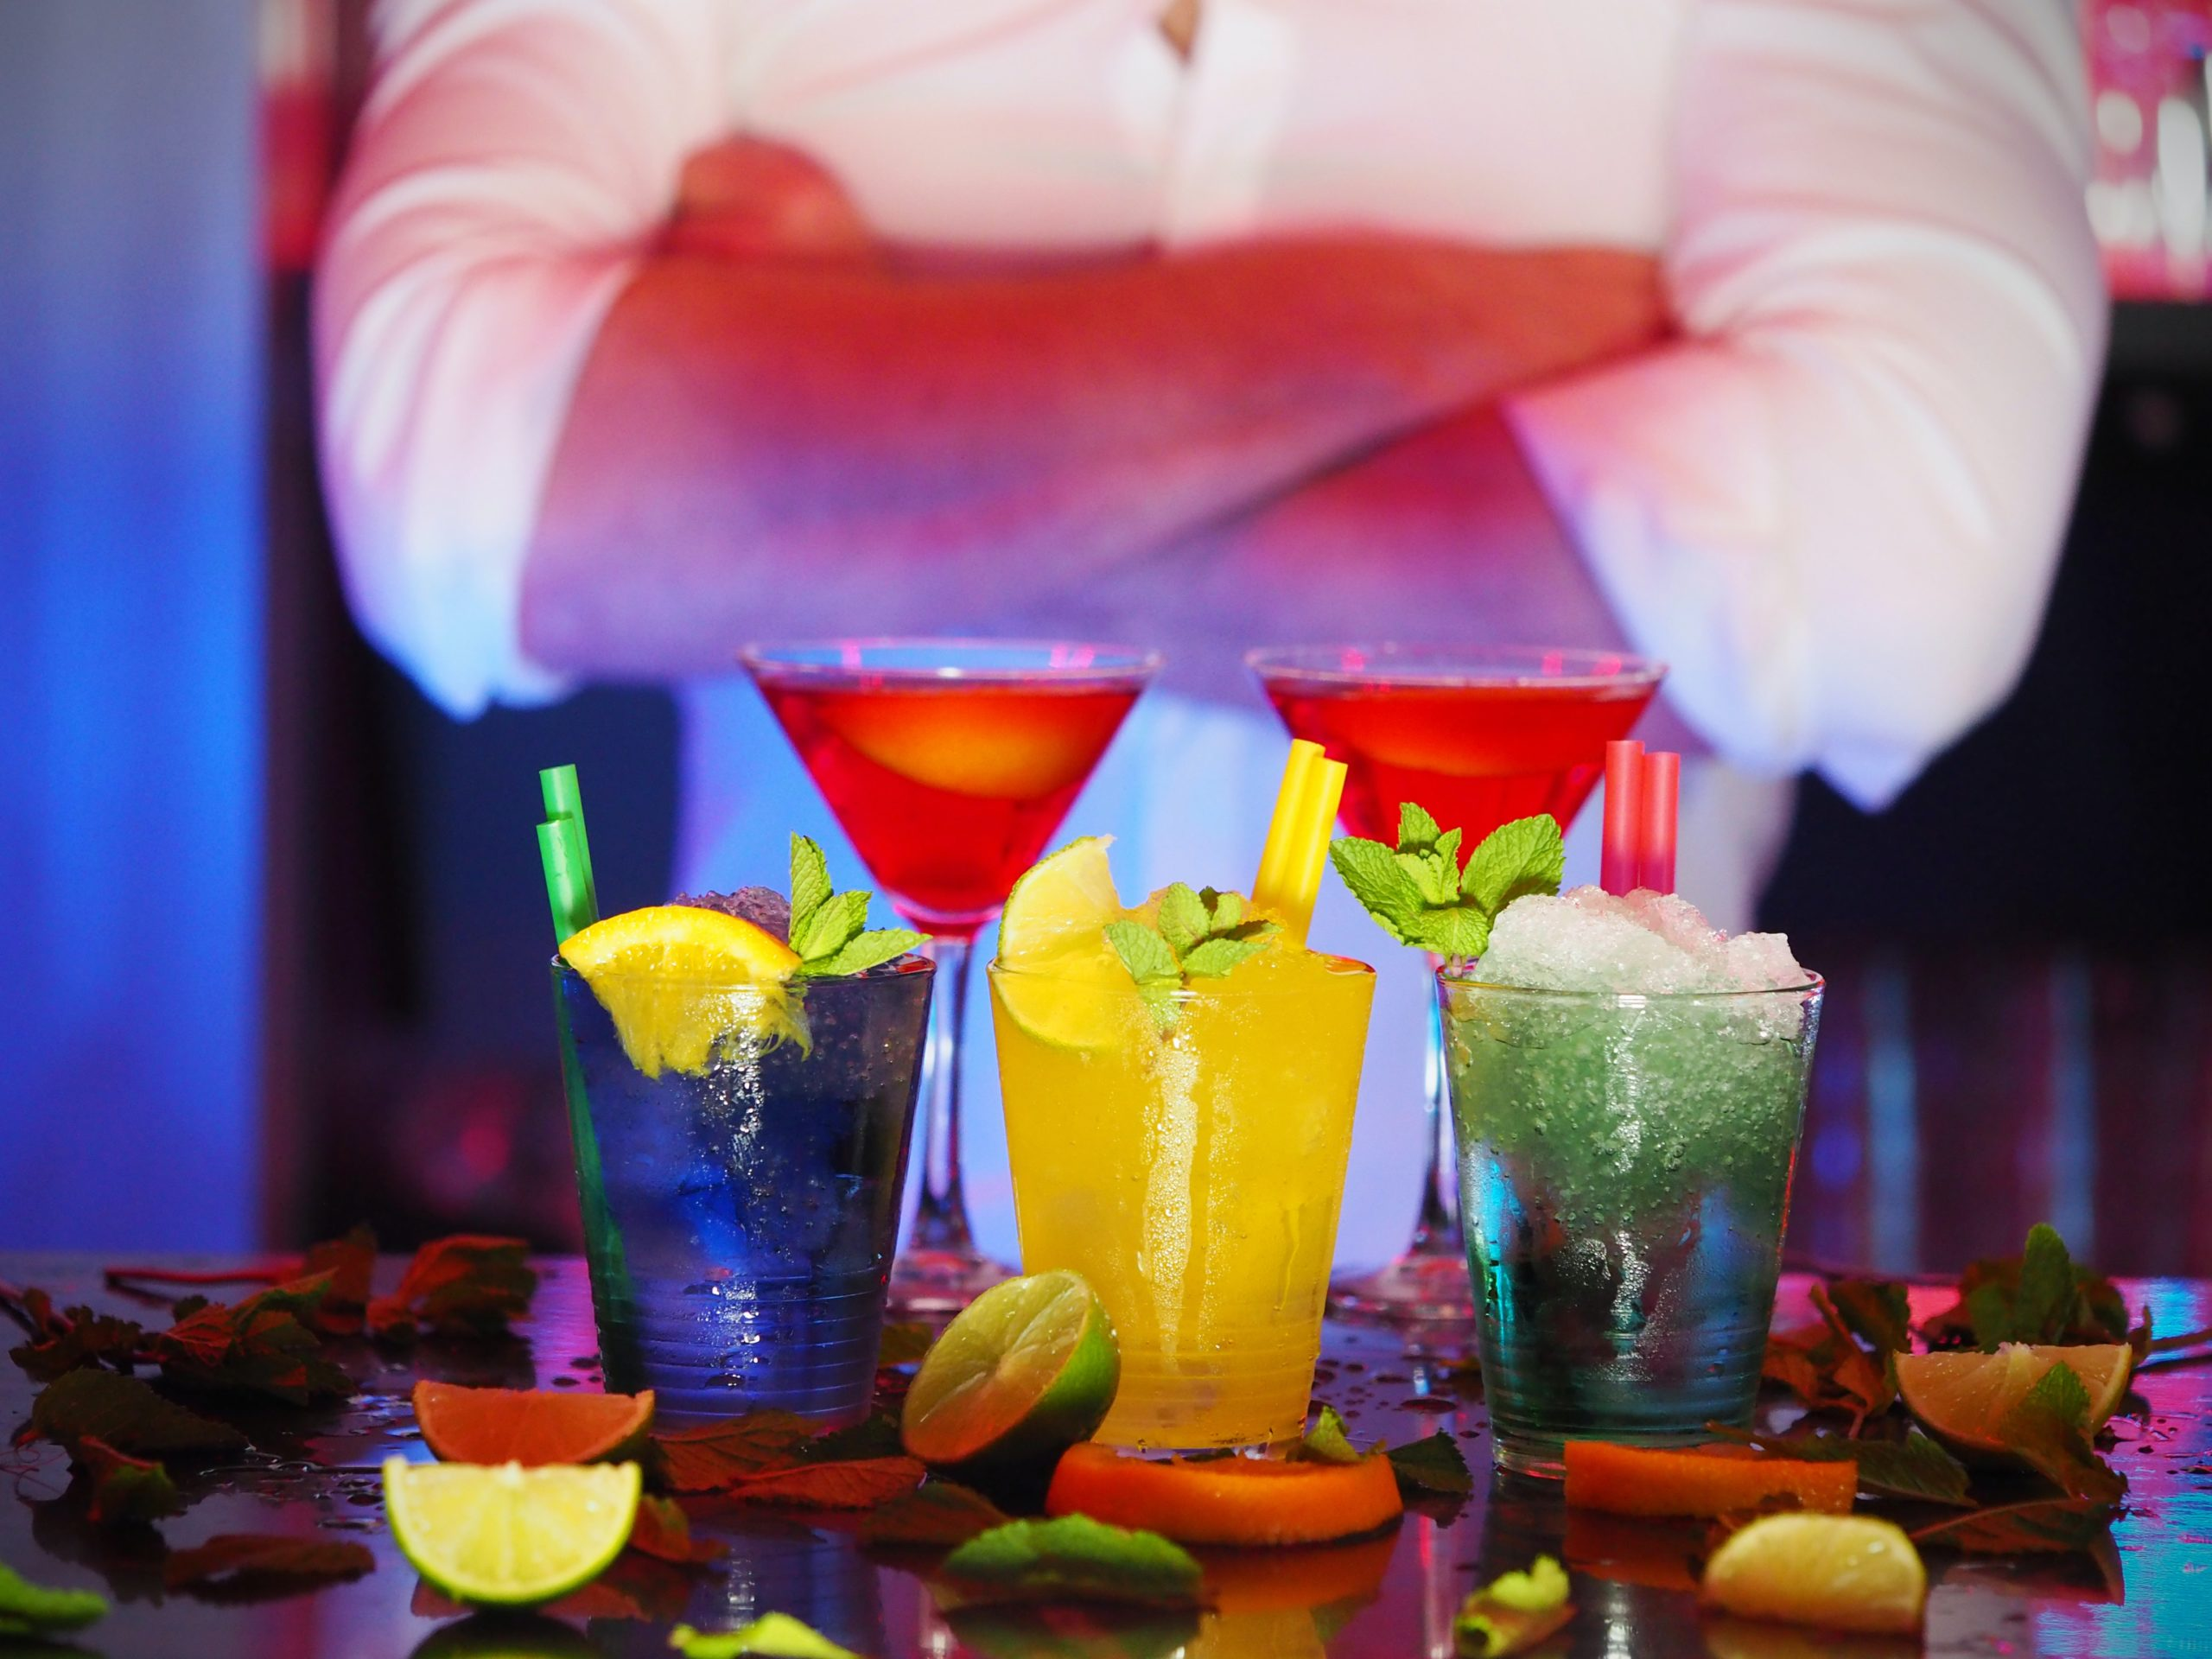 bartender, drinks, live events, open bar, local freelance bartenders, cocktail parties, holiday parties, holiday events, alcohol events, tasting parties, virtual cocktail parties